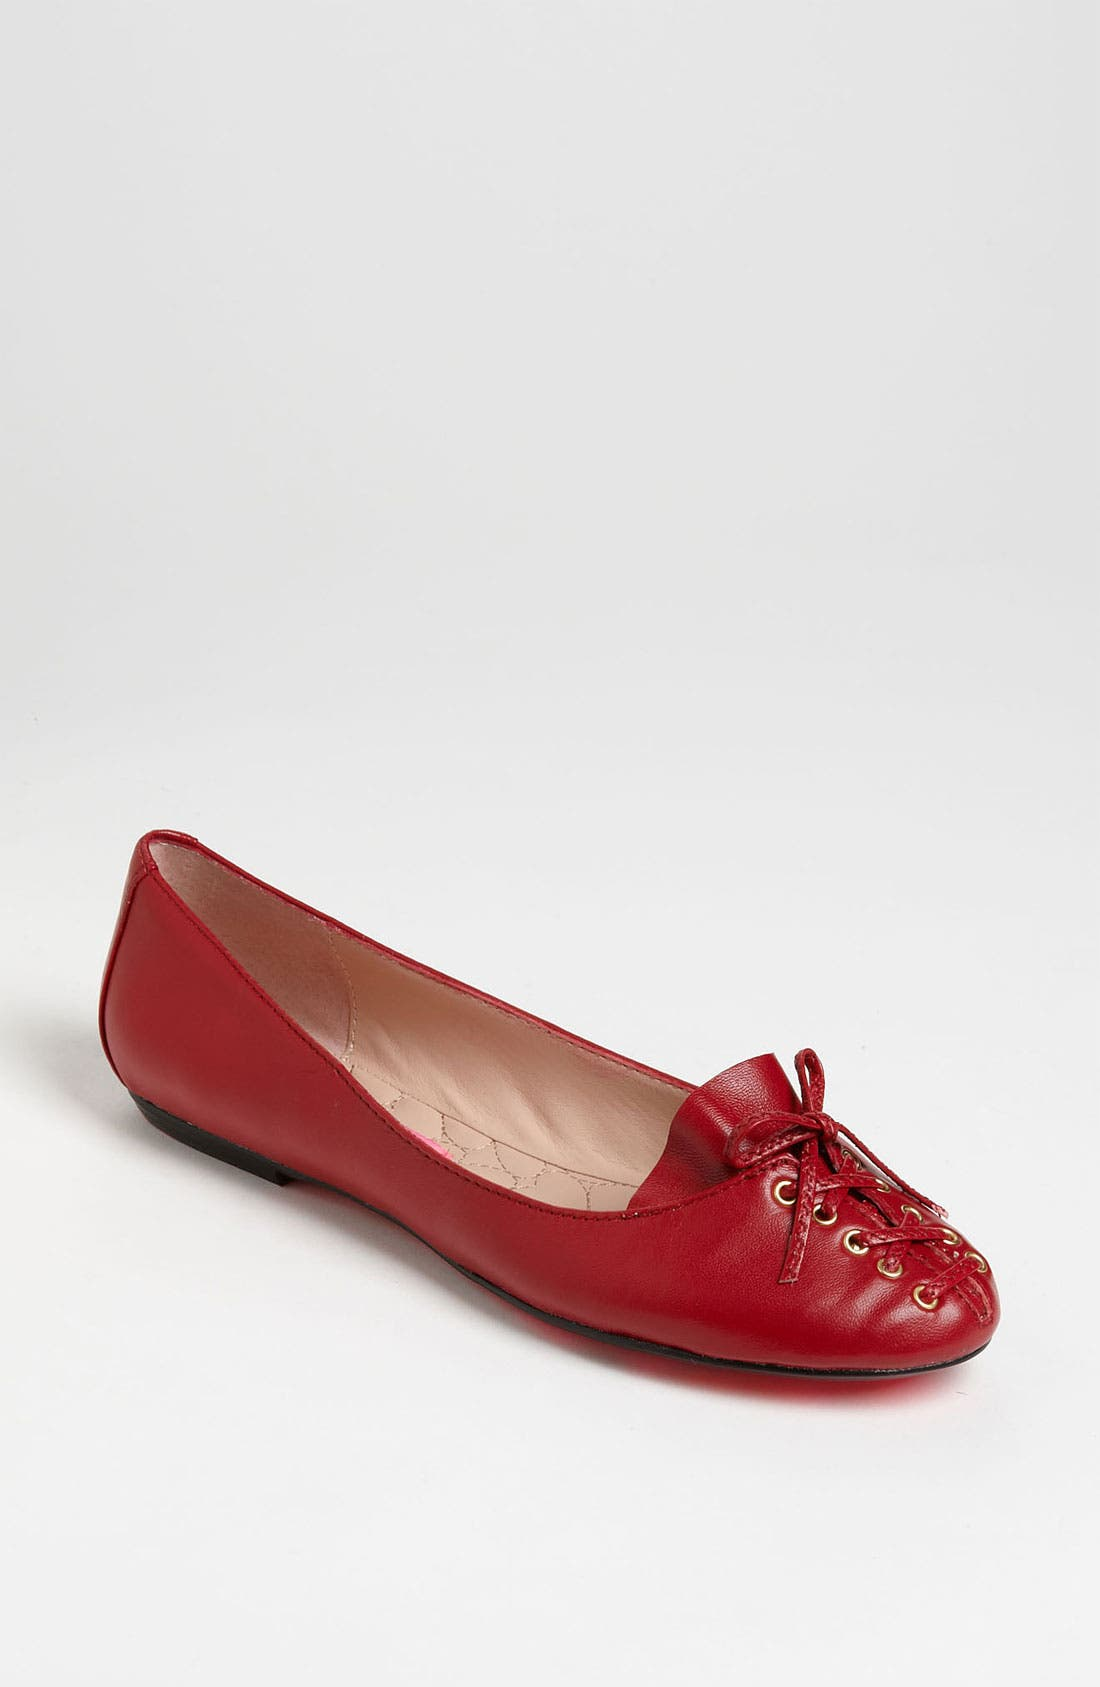 Main Image - Betsey Johnson 'Bevrly' Flat